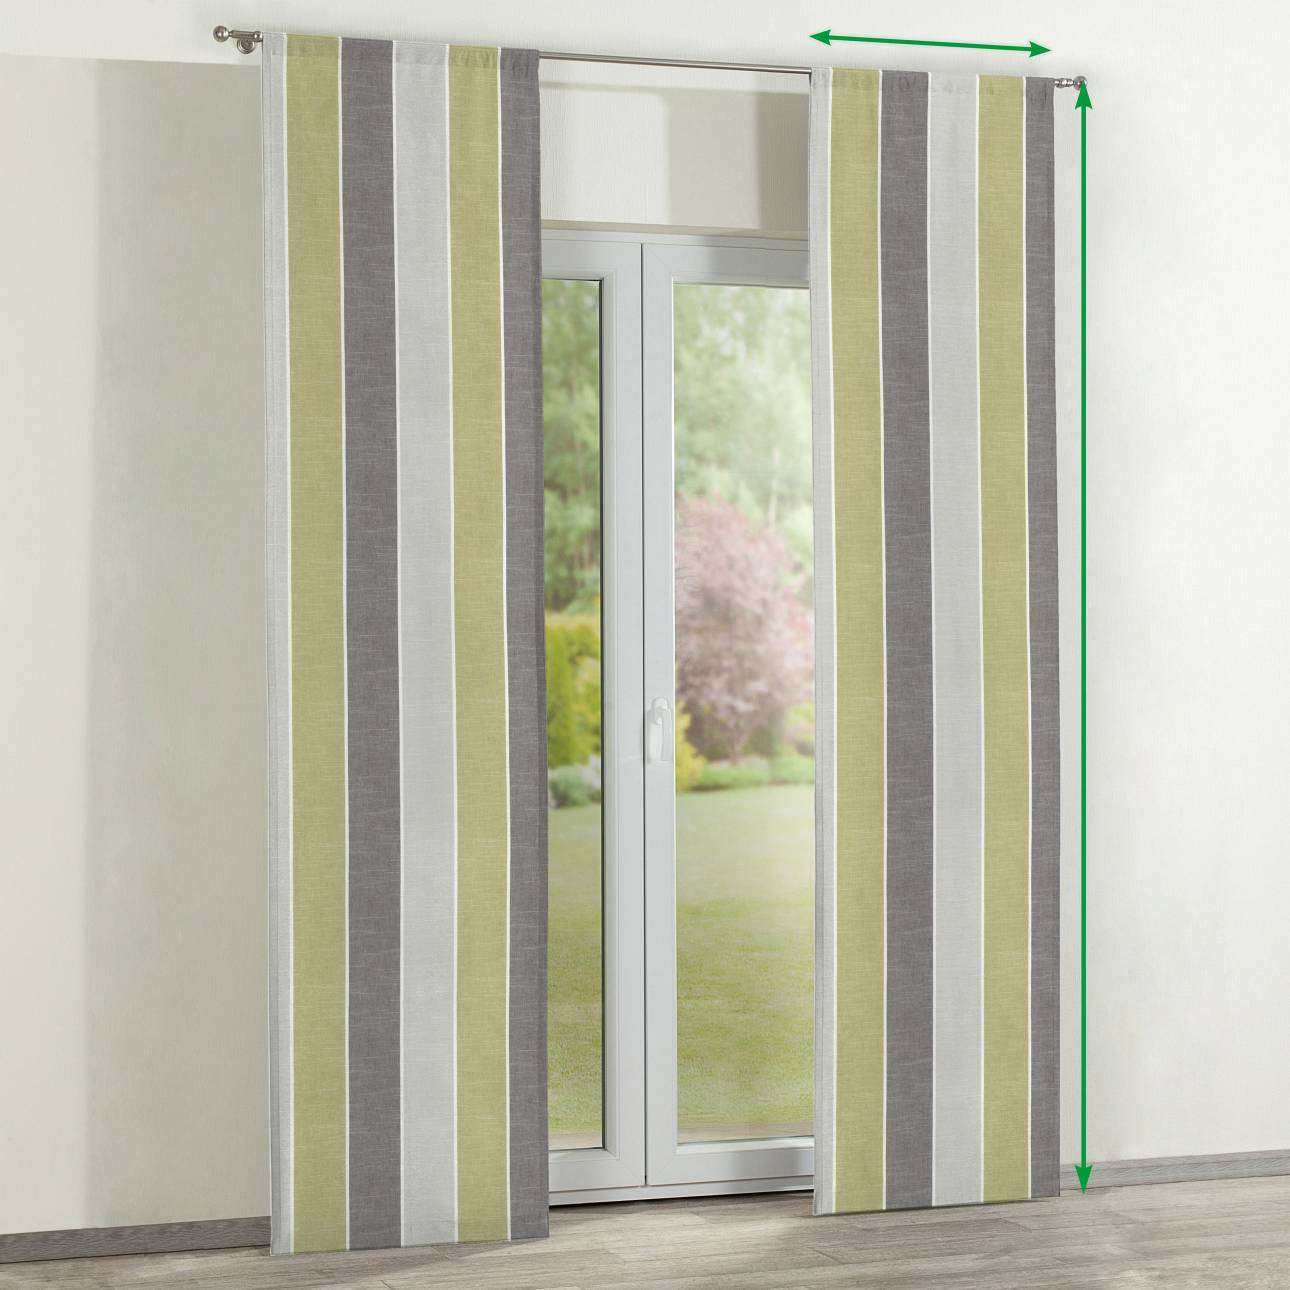 Slot panel curtains – Set of 2 in collection Cardiff, fabric: 136-23